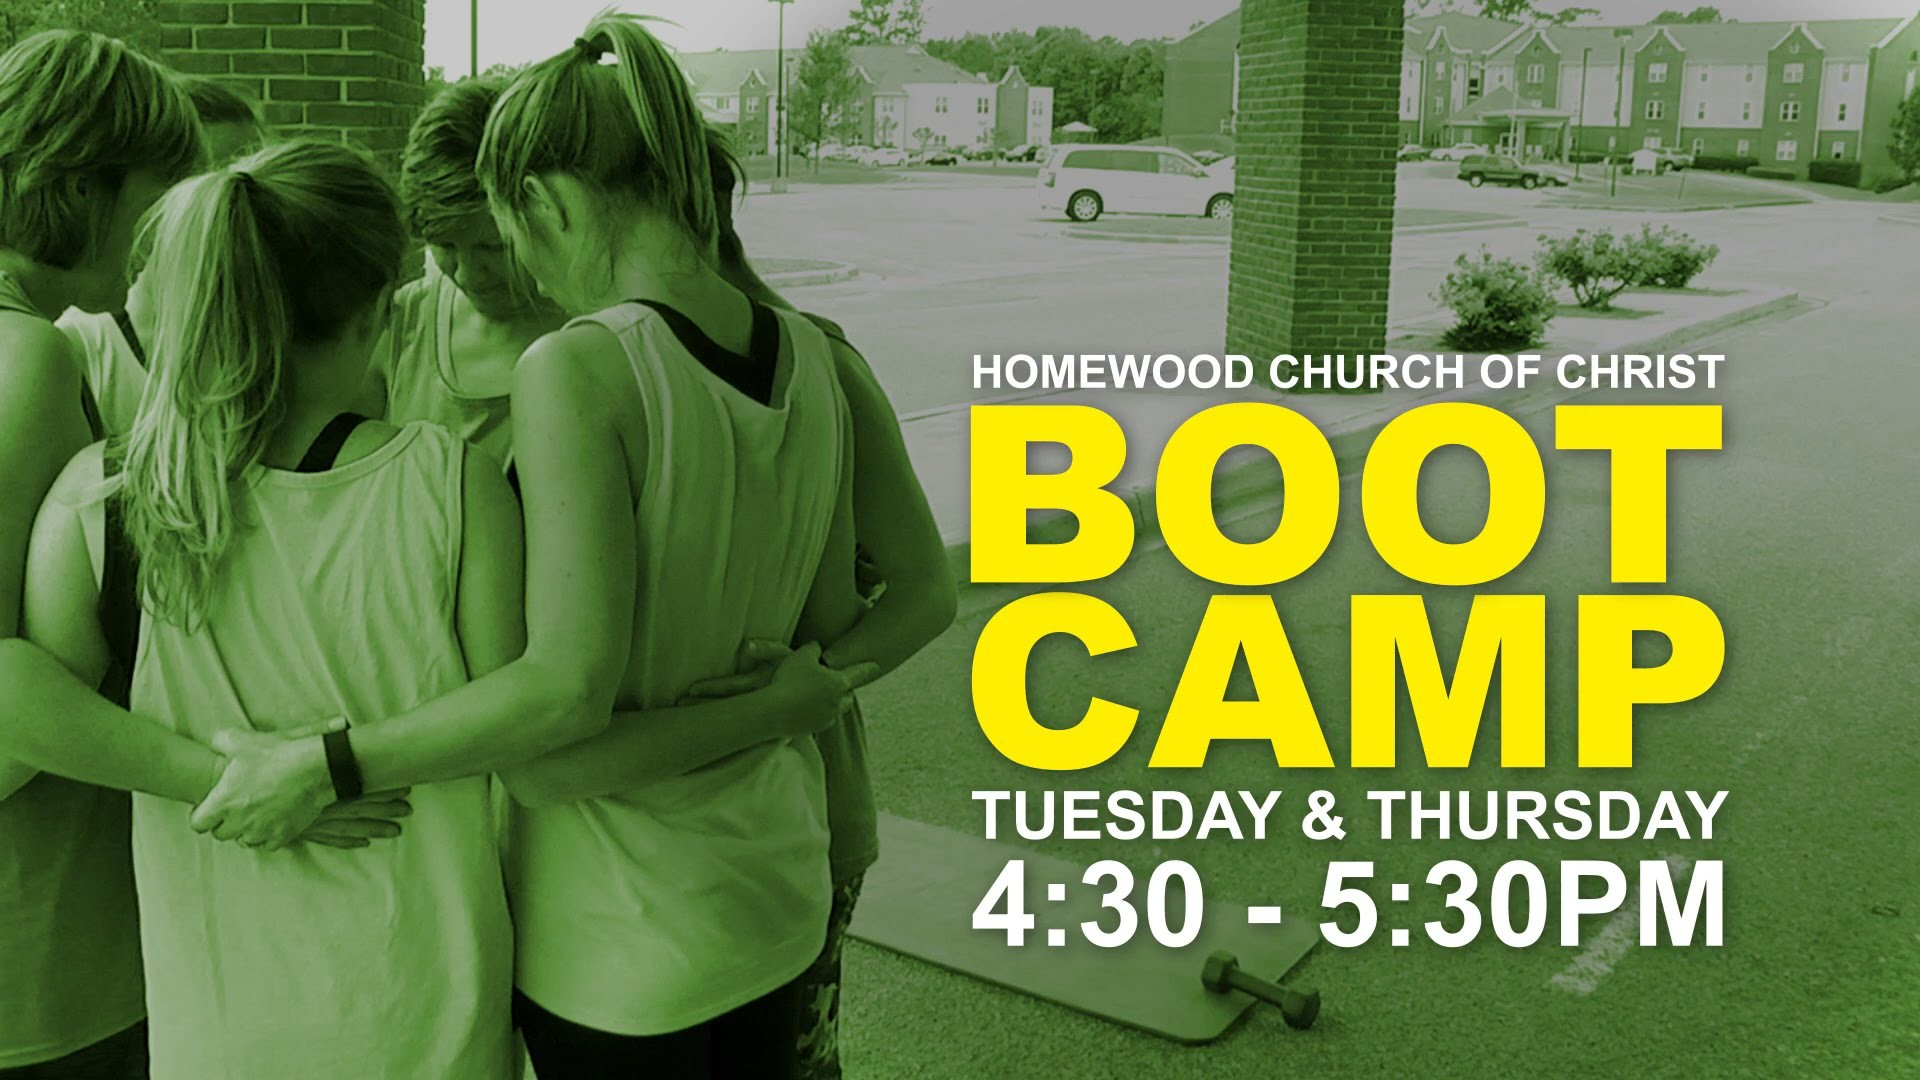 1920x1080 Homewood Church Boot Camp Promo